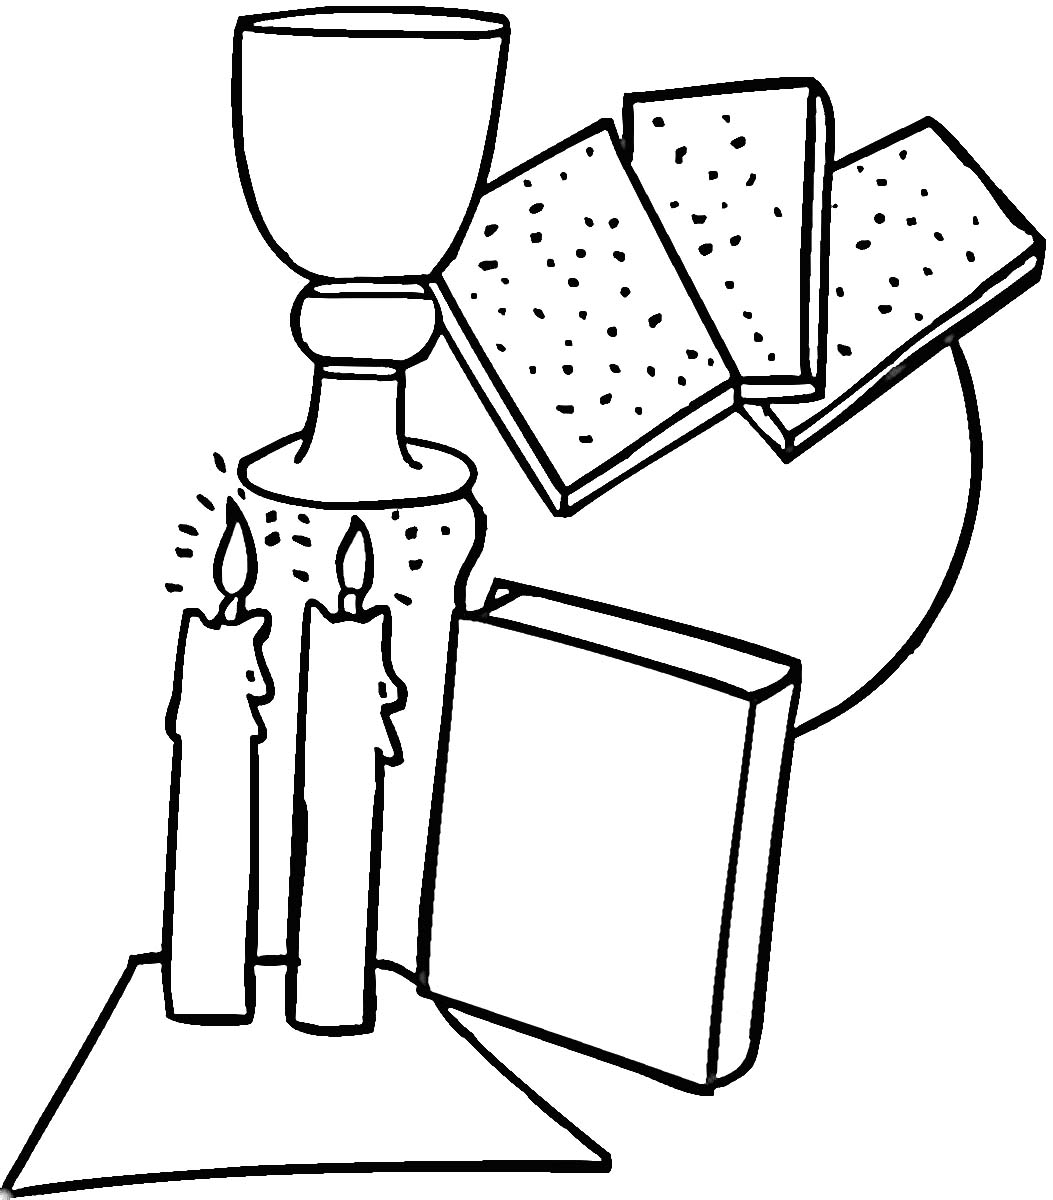 Religious Coloring Pages Coloring Pages To Print Religious Coloring Pages For